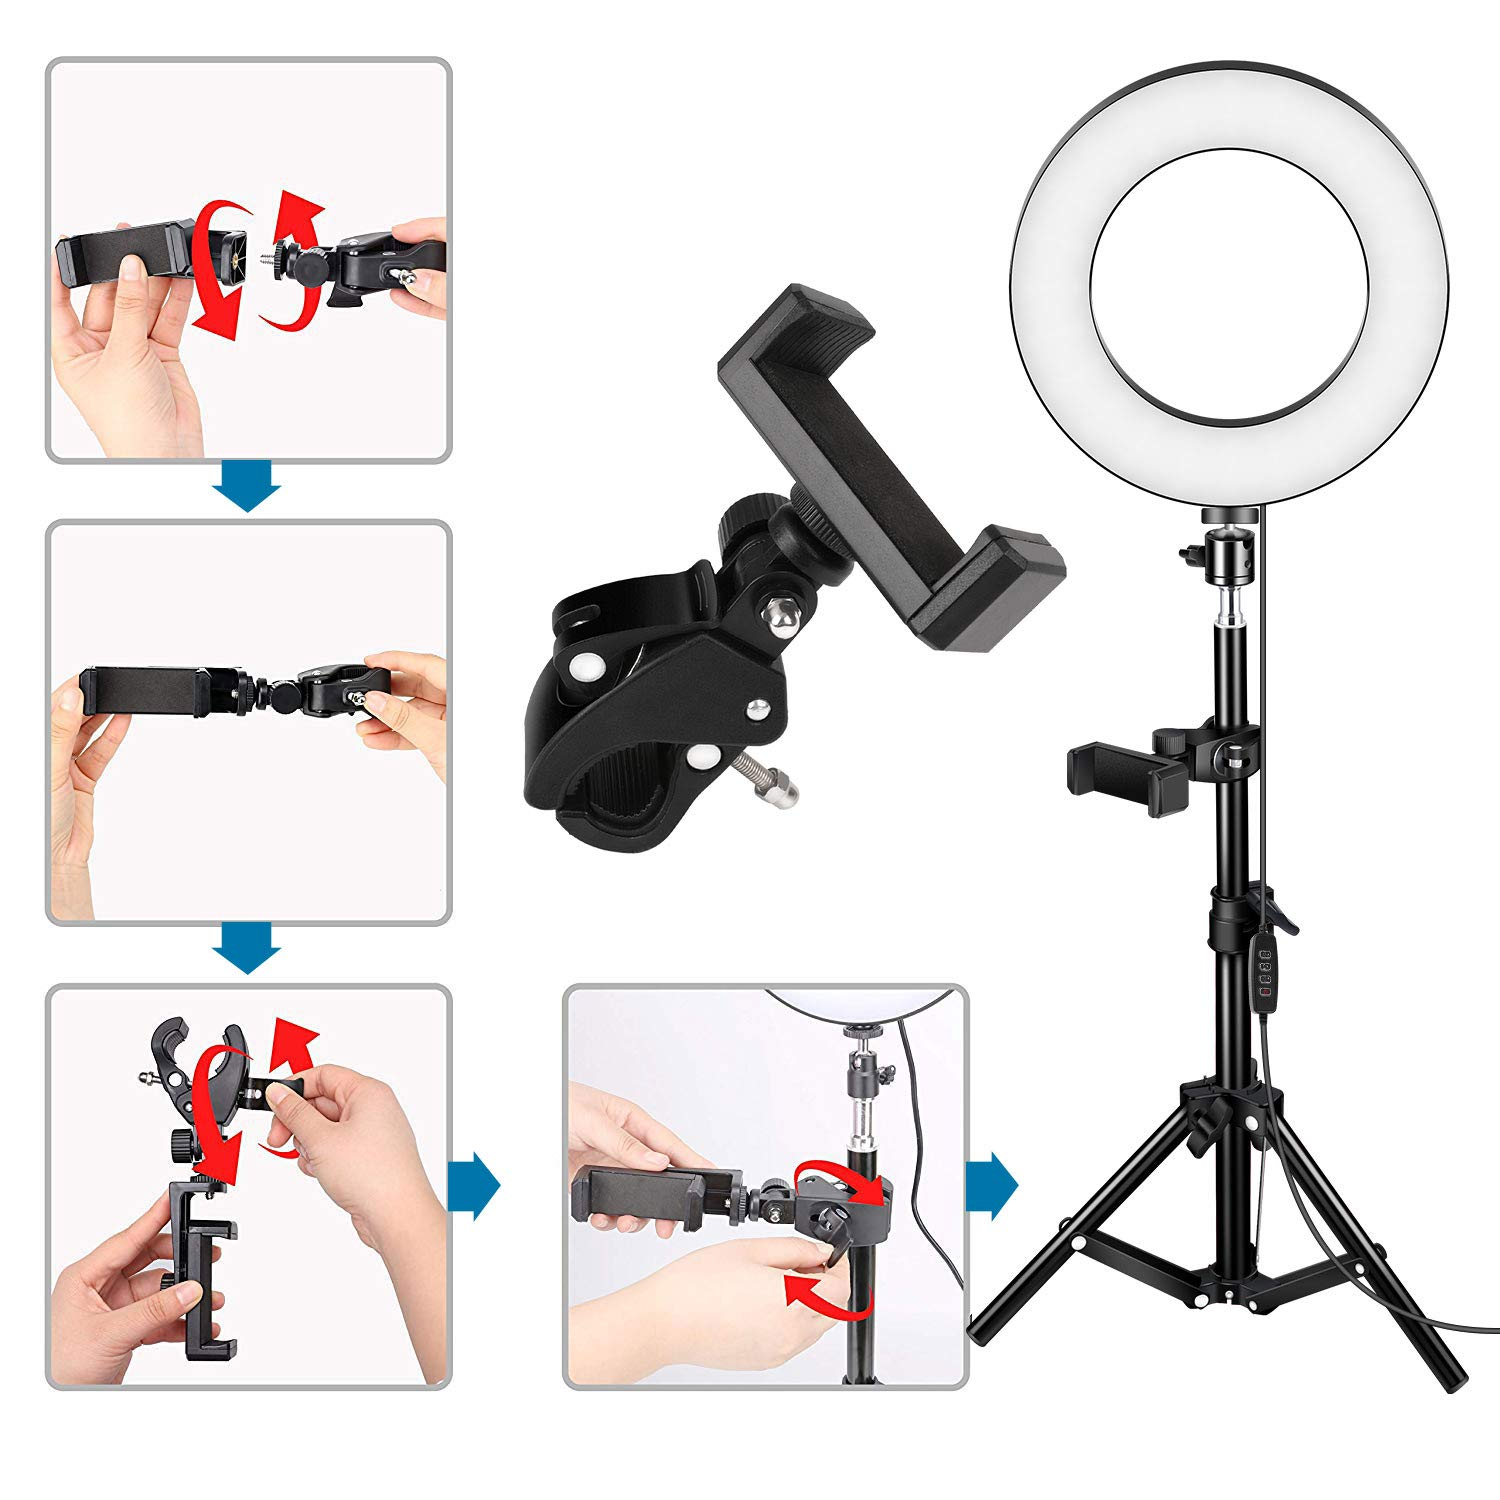 TaoTens 10 LED Ring Light with Tripod Stand /& Cell Phone Holder for Live Stream//Makeup,Mini Led Camera Ringlight for YouTube Vlog//Video//Photography Compatible with iPhone Xs Max XR Android